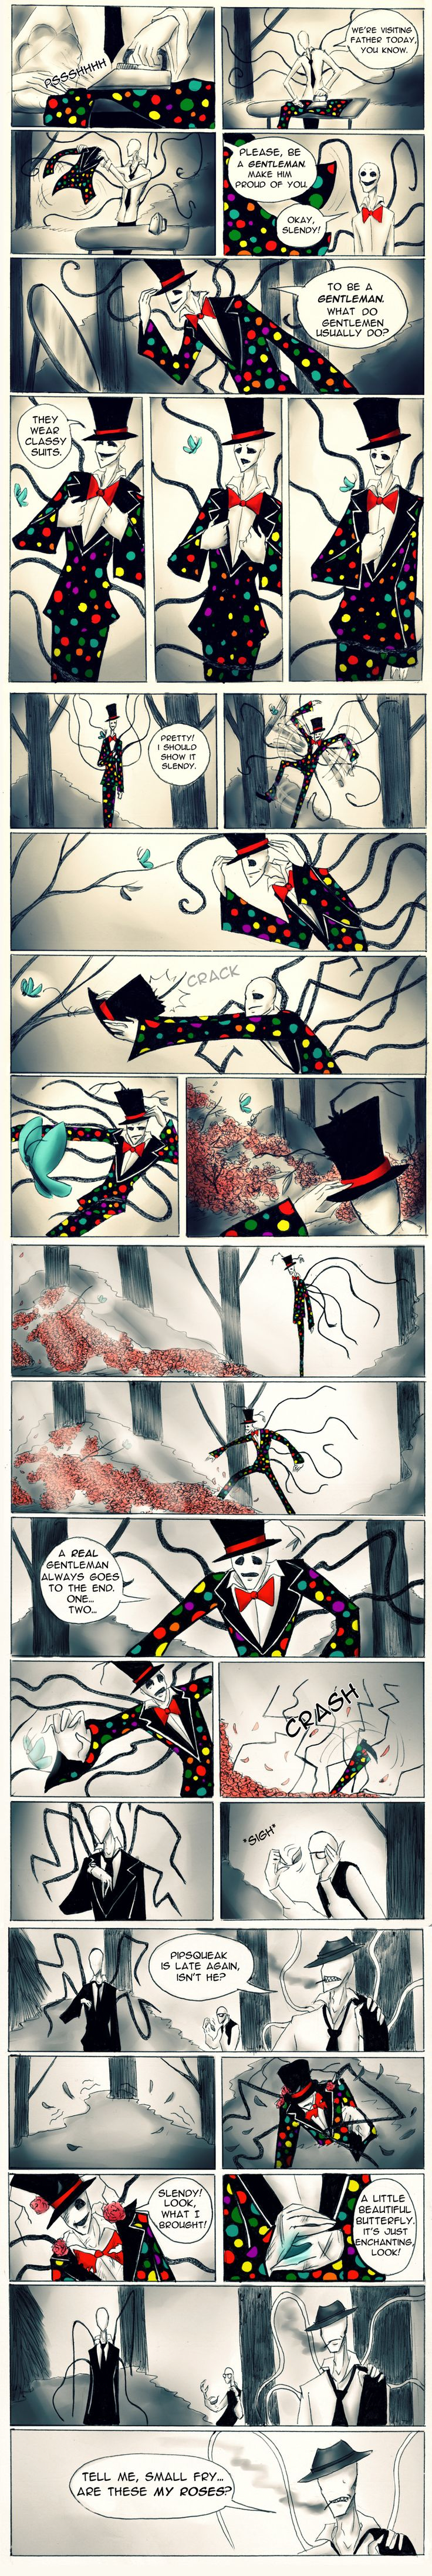 A real gentleman. by Paradoxoid.deviantart.com on @DeviantArt